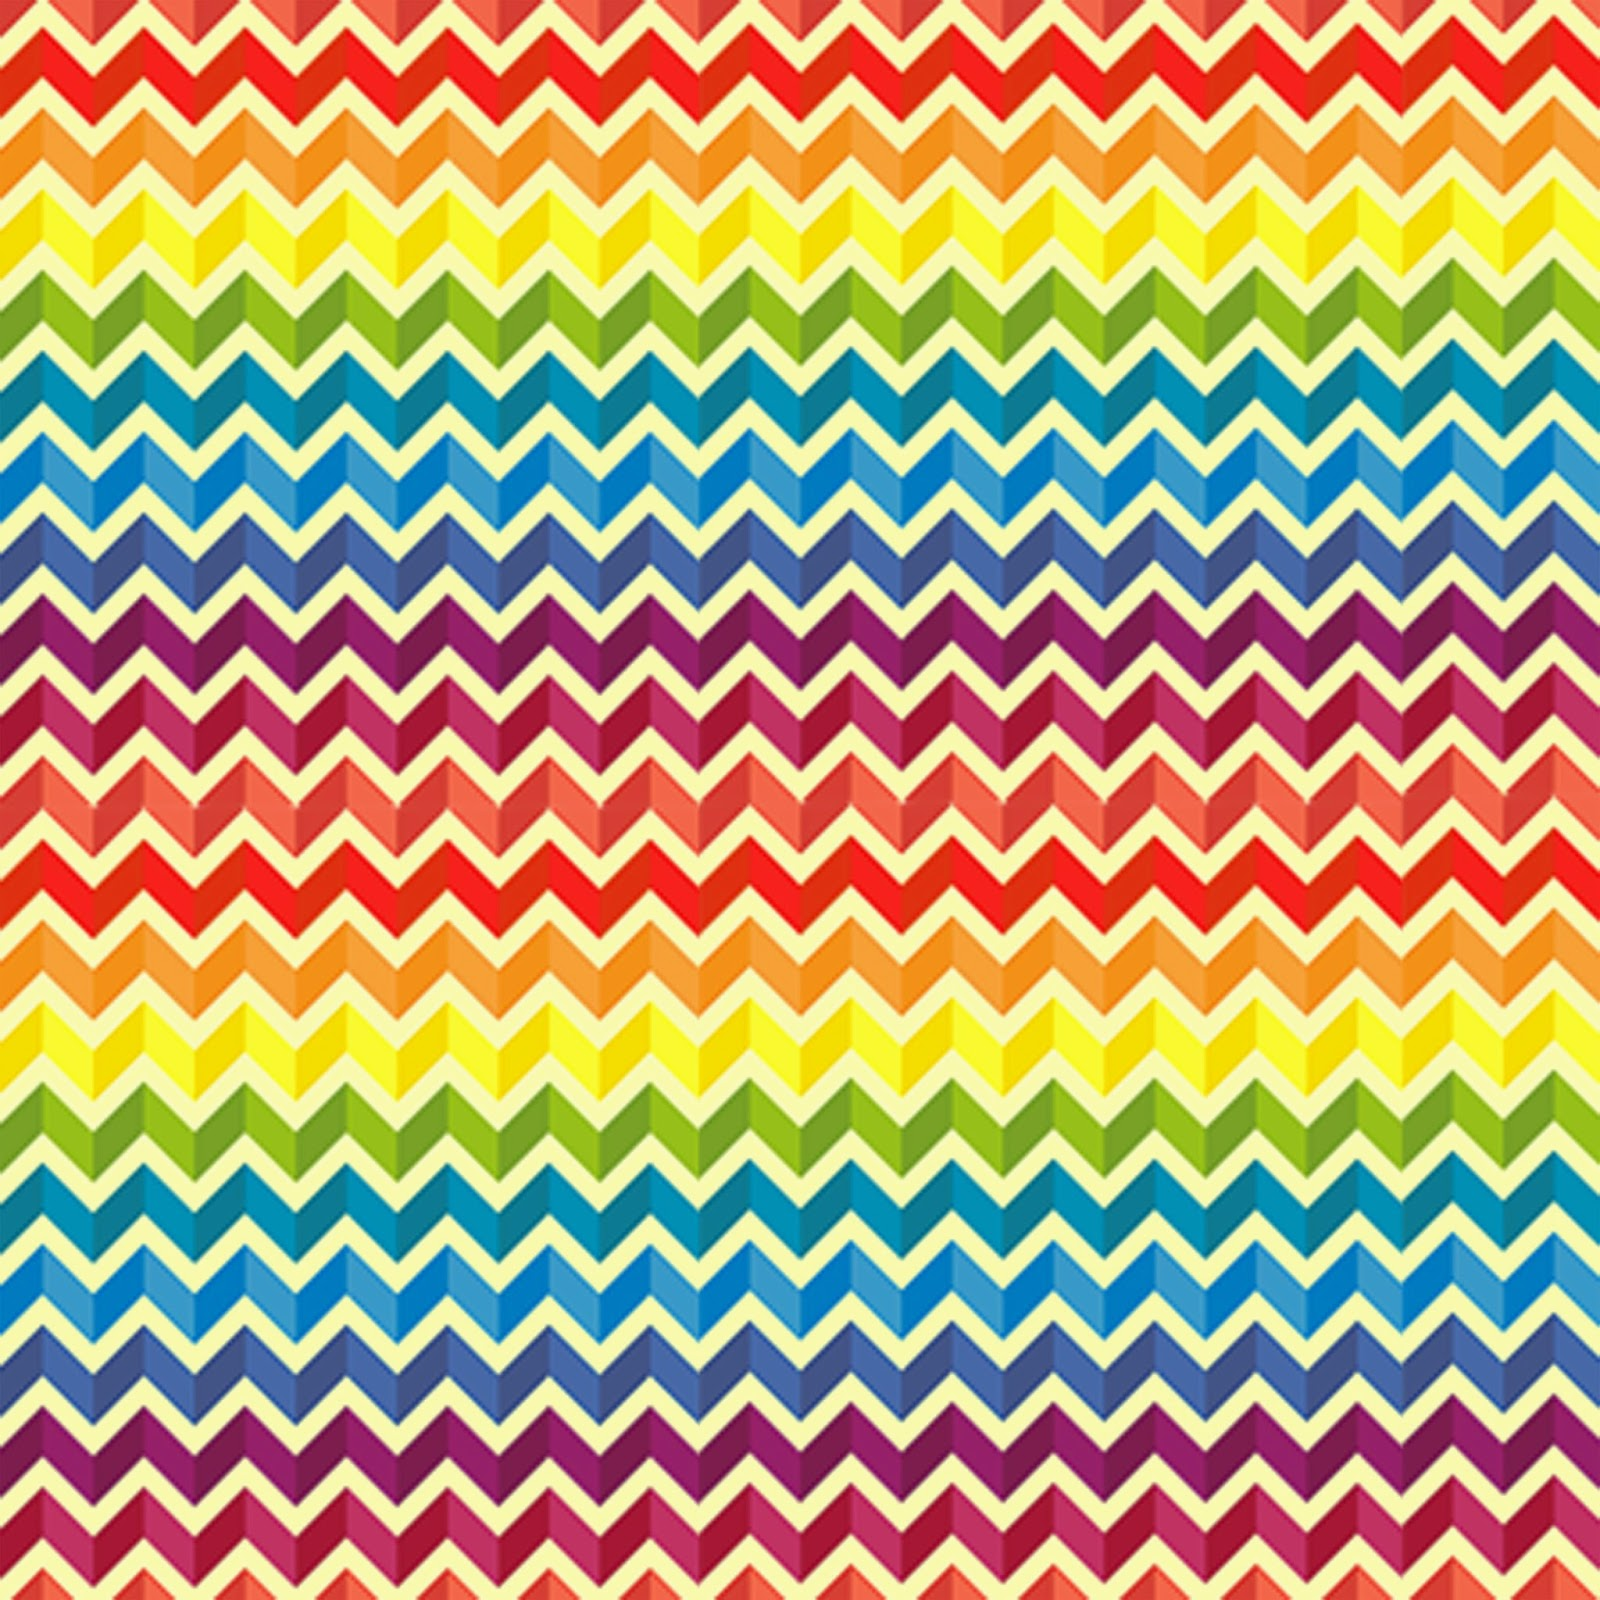 8 Colorful Block Chevron Freebie Printable Patterns